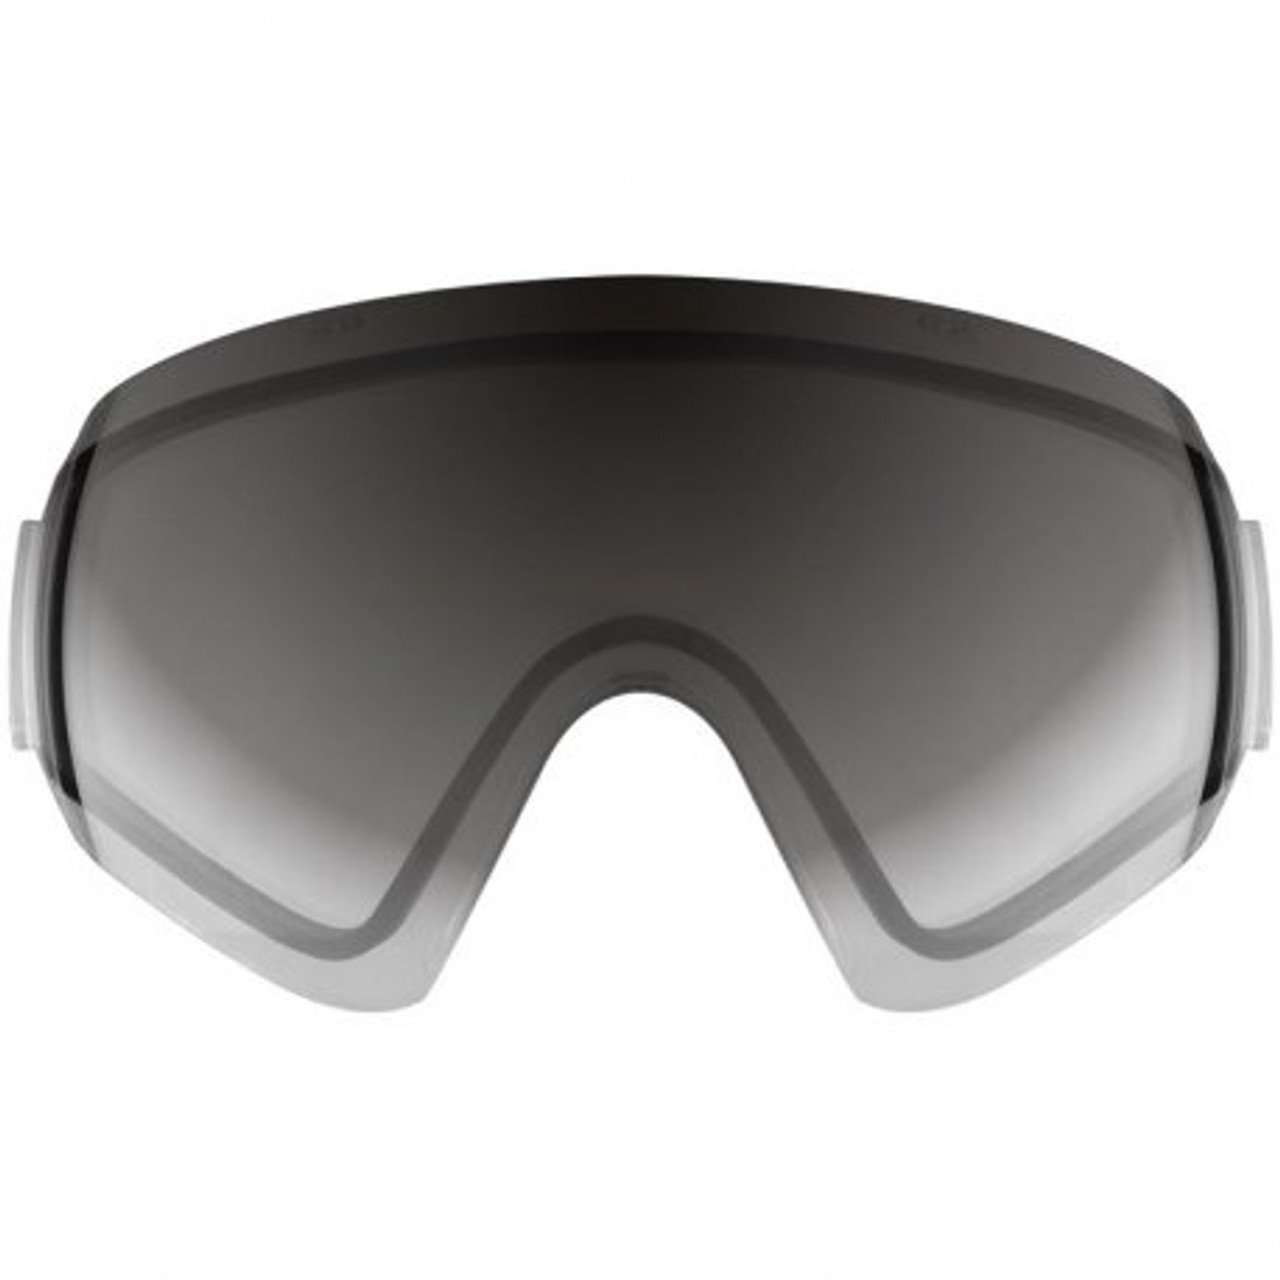 VForce Profiler HDR Thermal Lens / Quicksilver